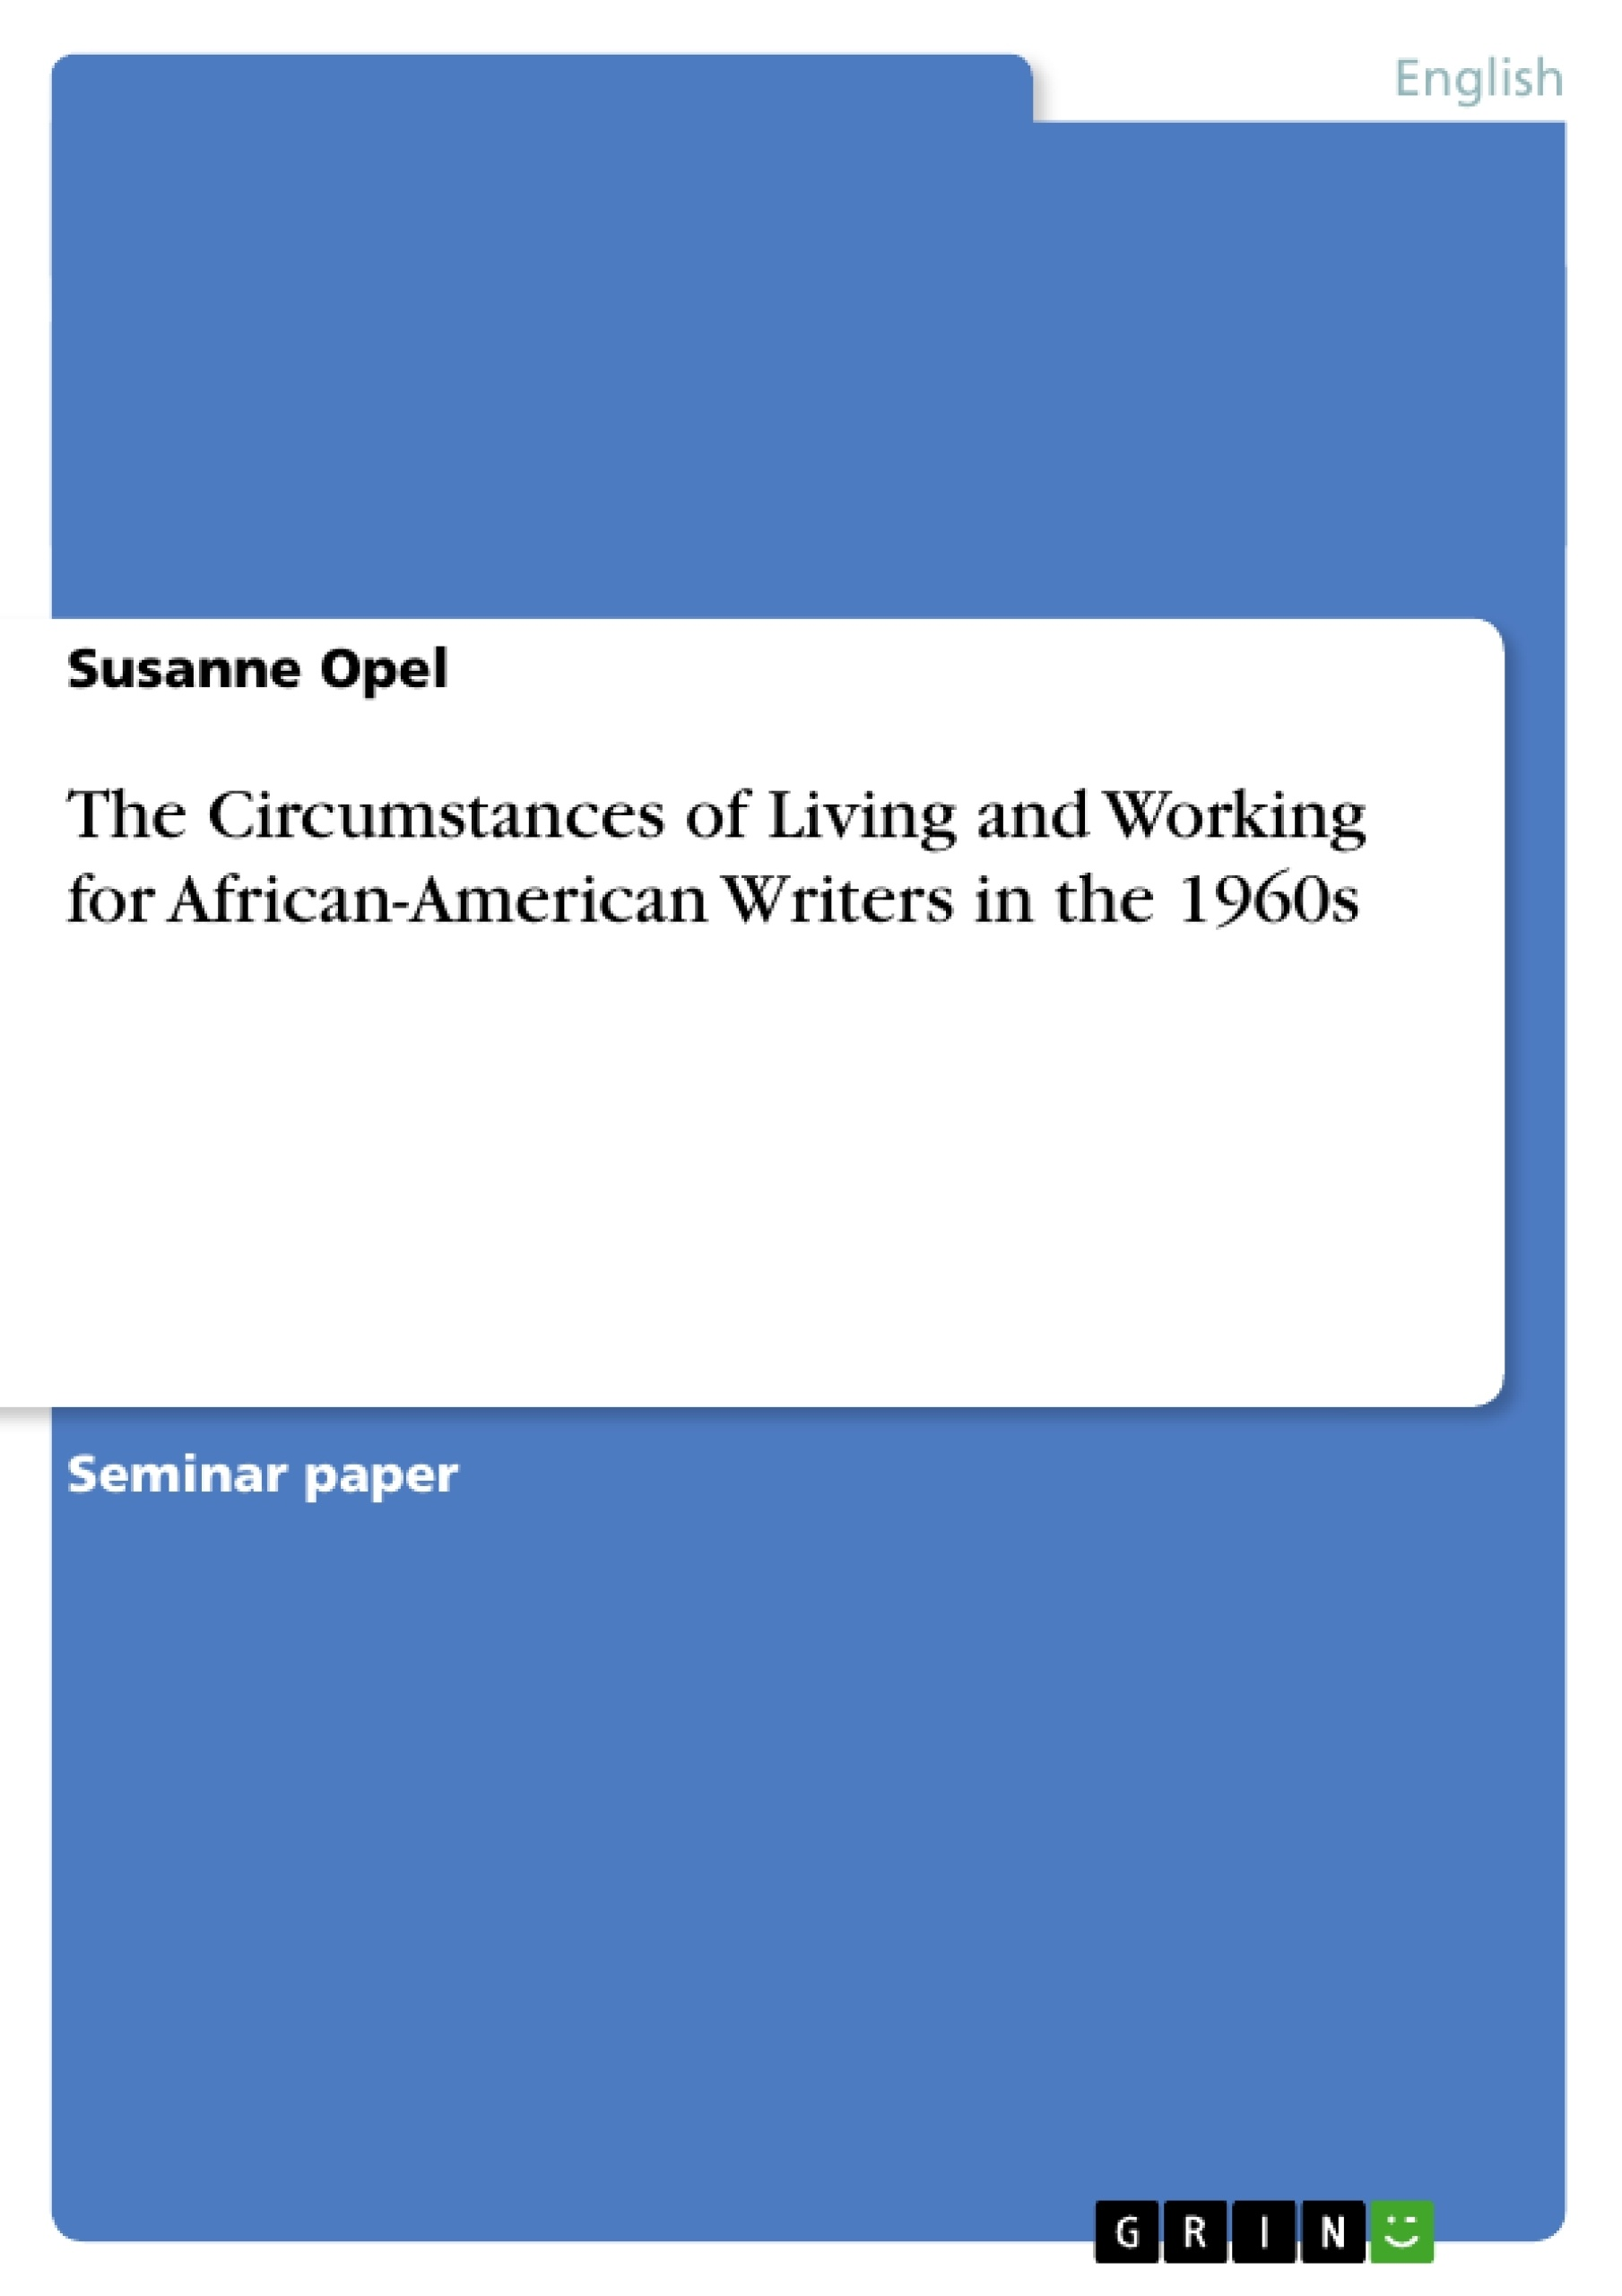 Title: The Circumstances of Living and Working for African-American Writers in the 1960s